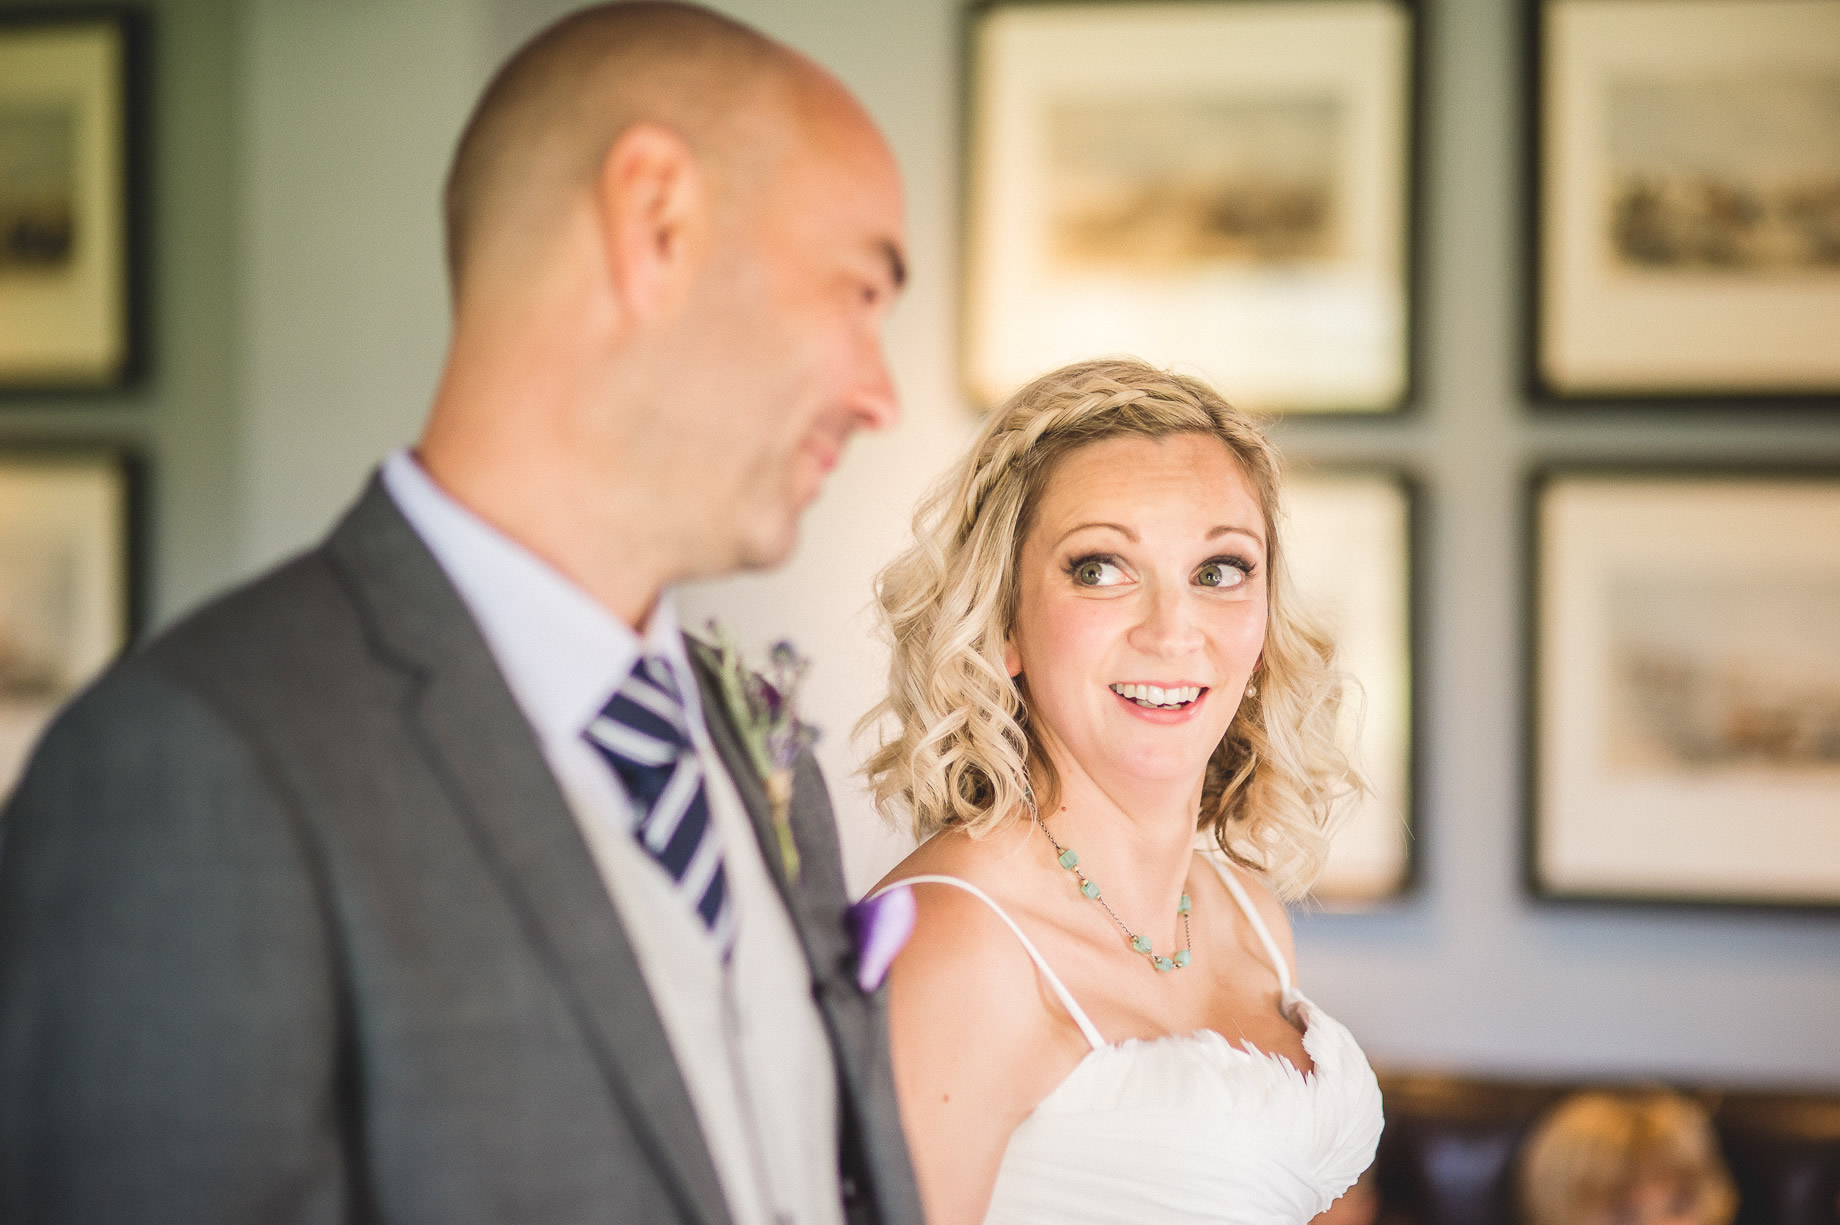 Tess and Paul's Wedding at The Inn at Whitewell 072